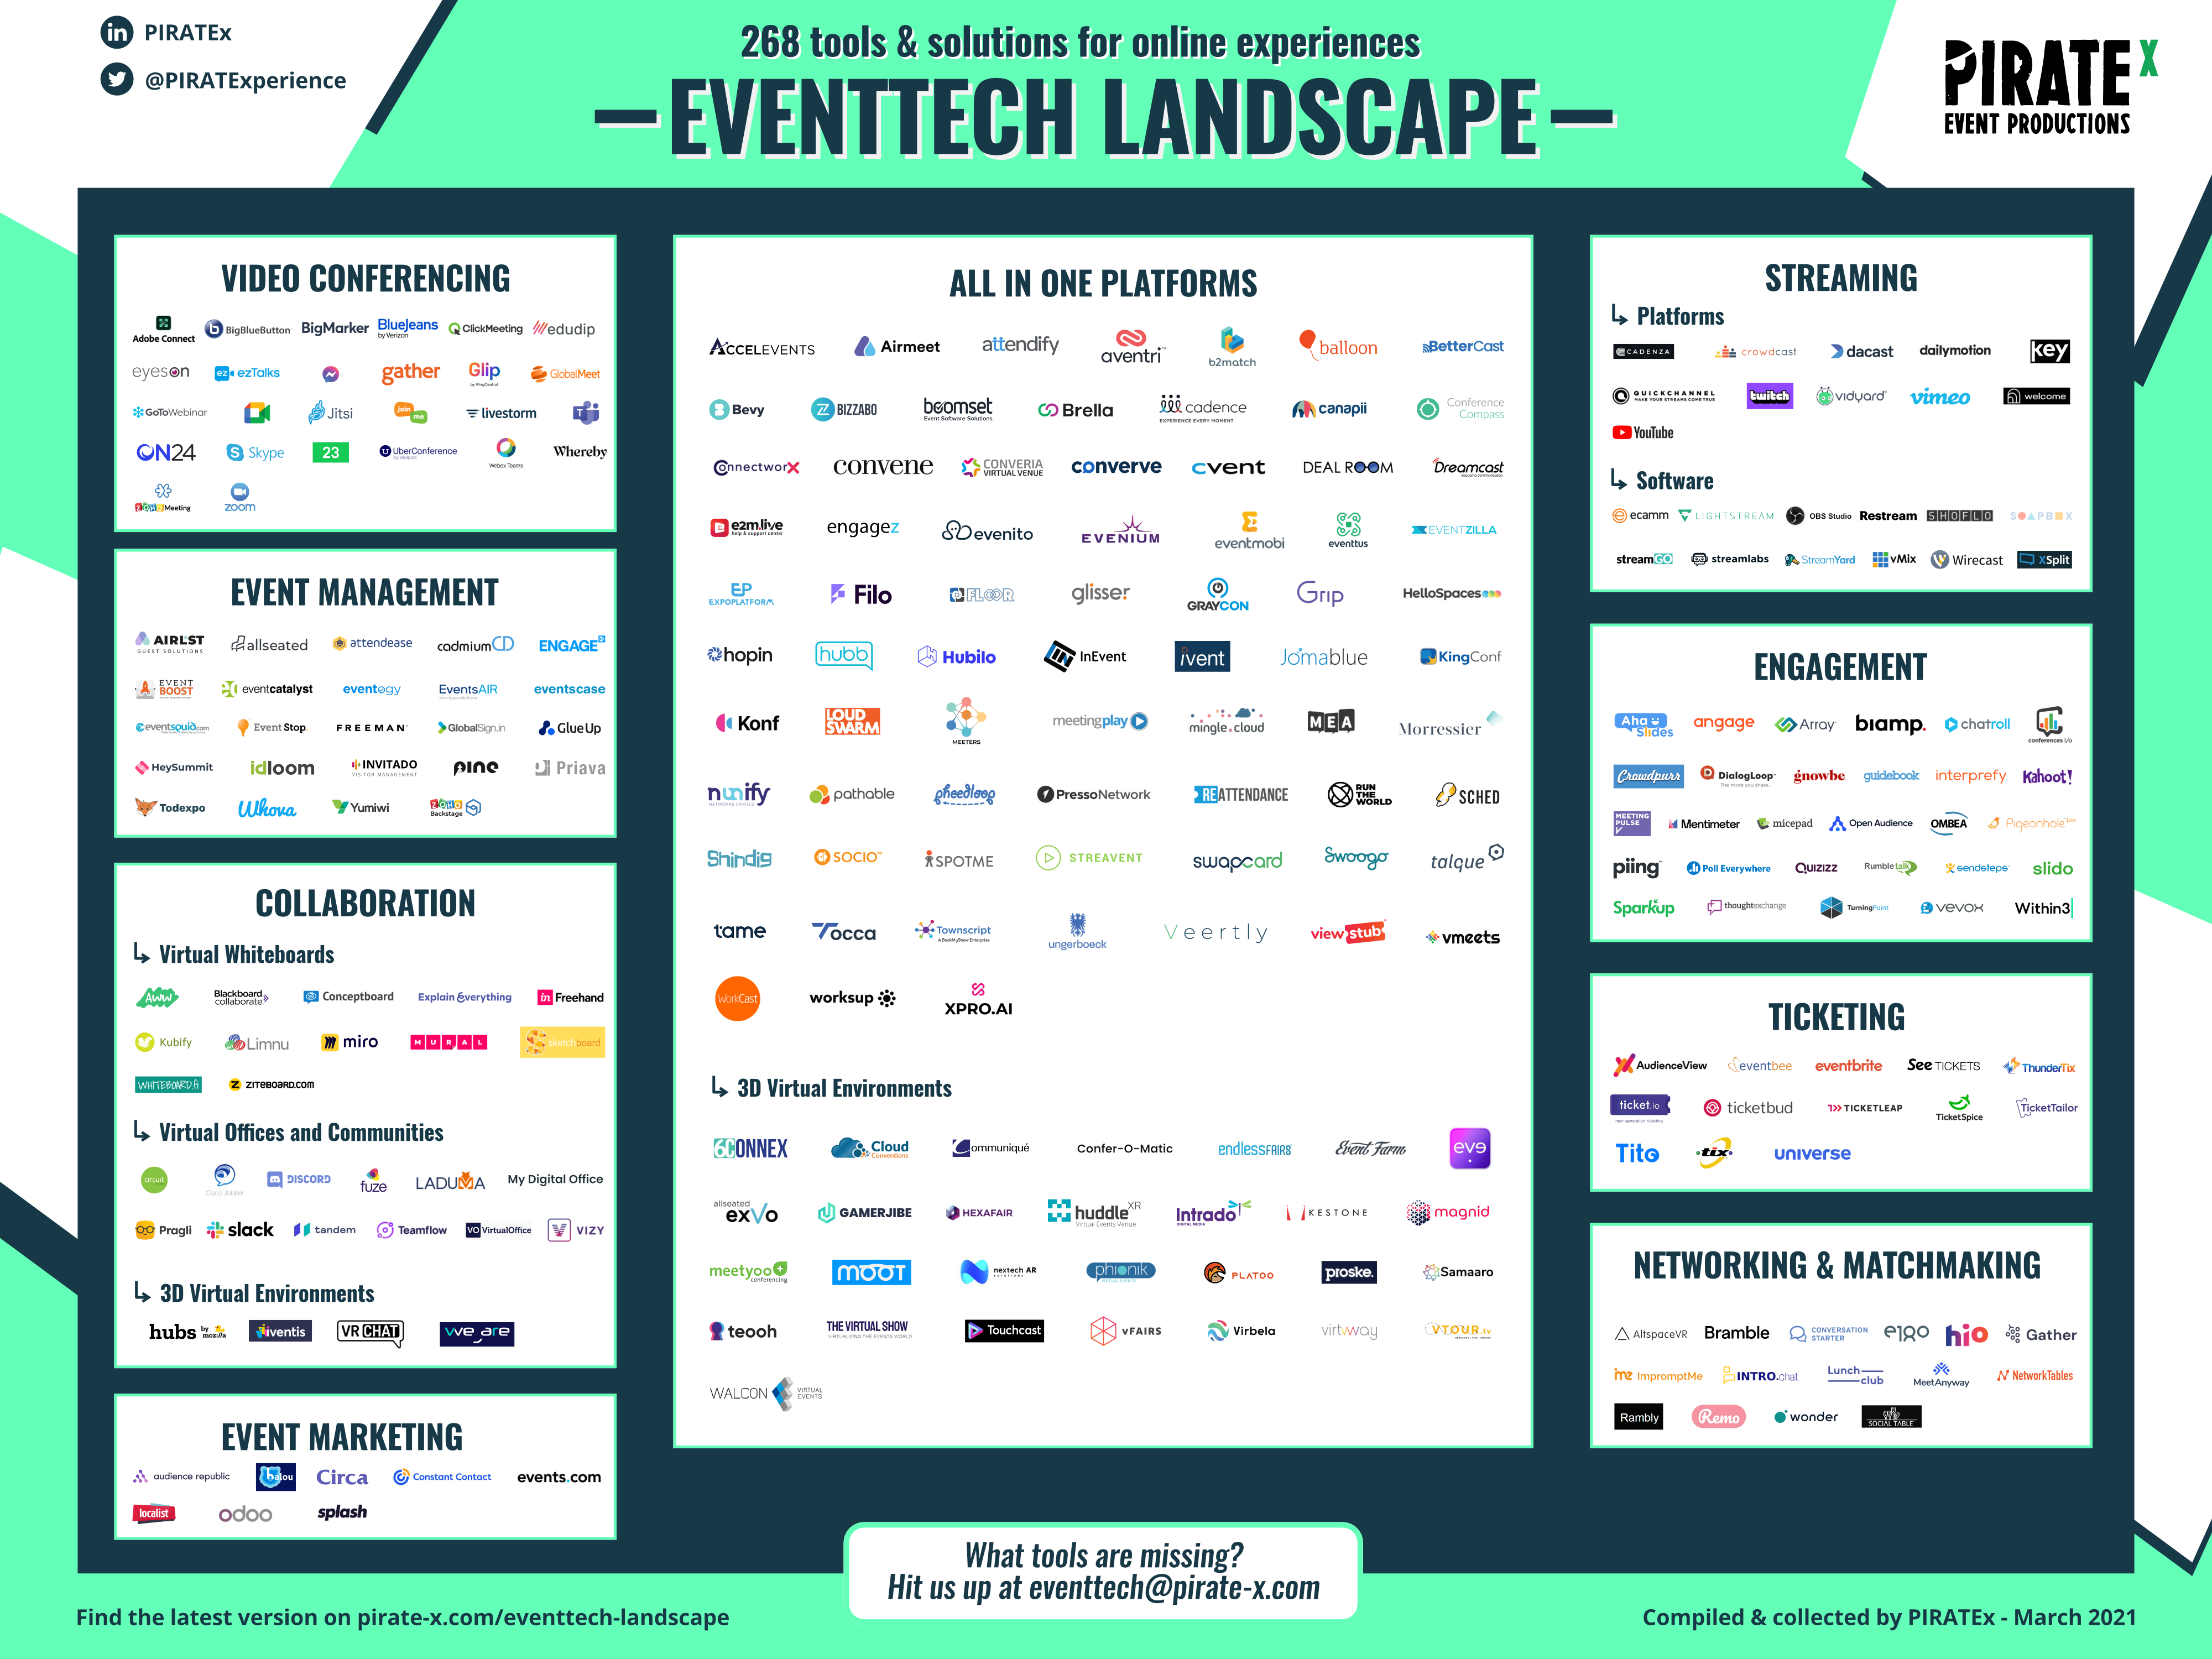 Overview of the 2021 Eventtech Landscape